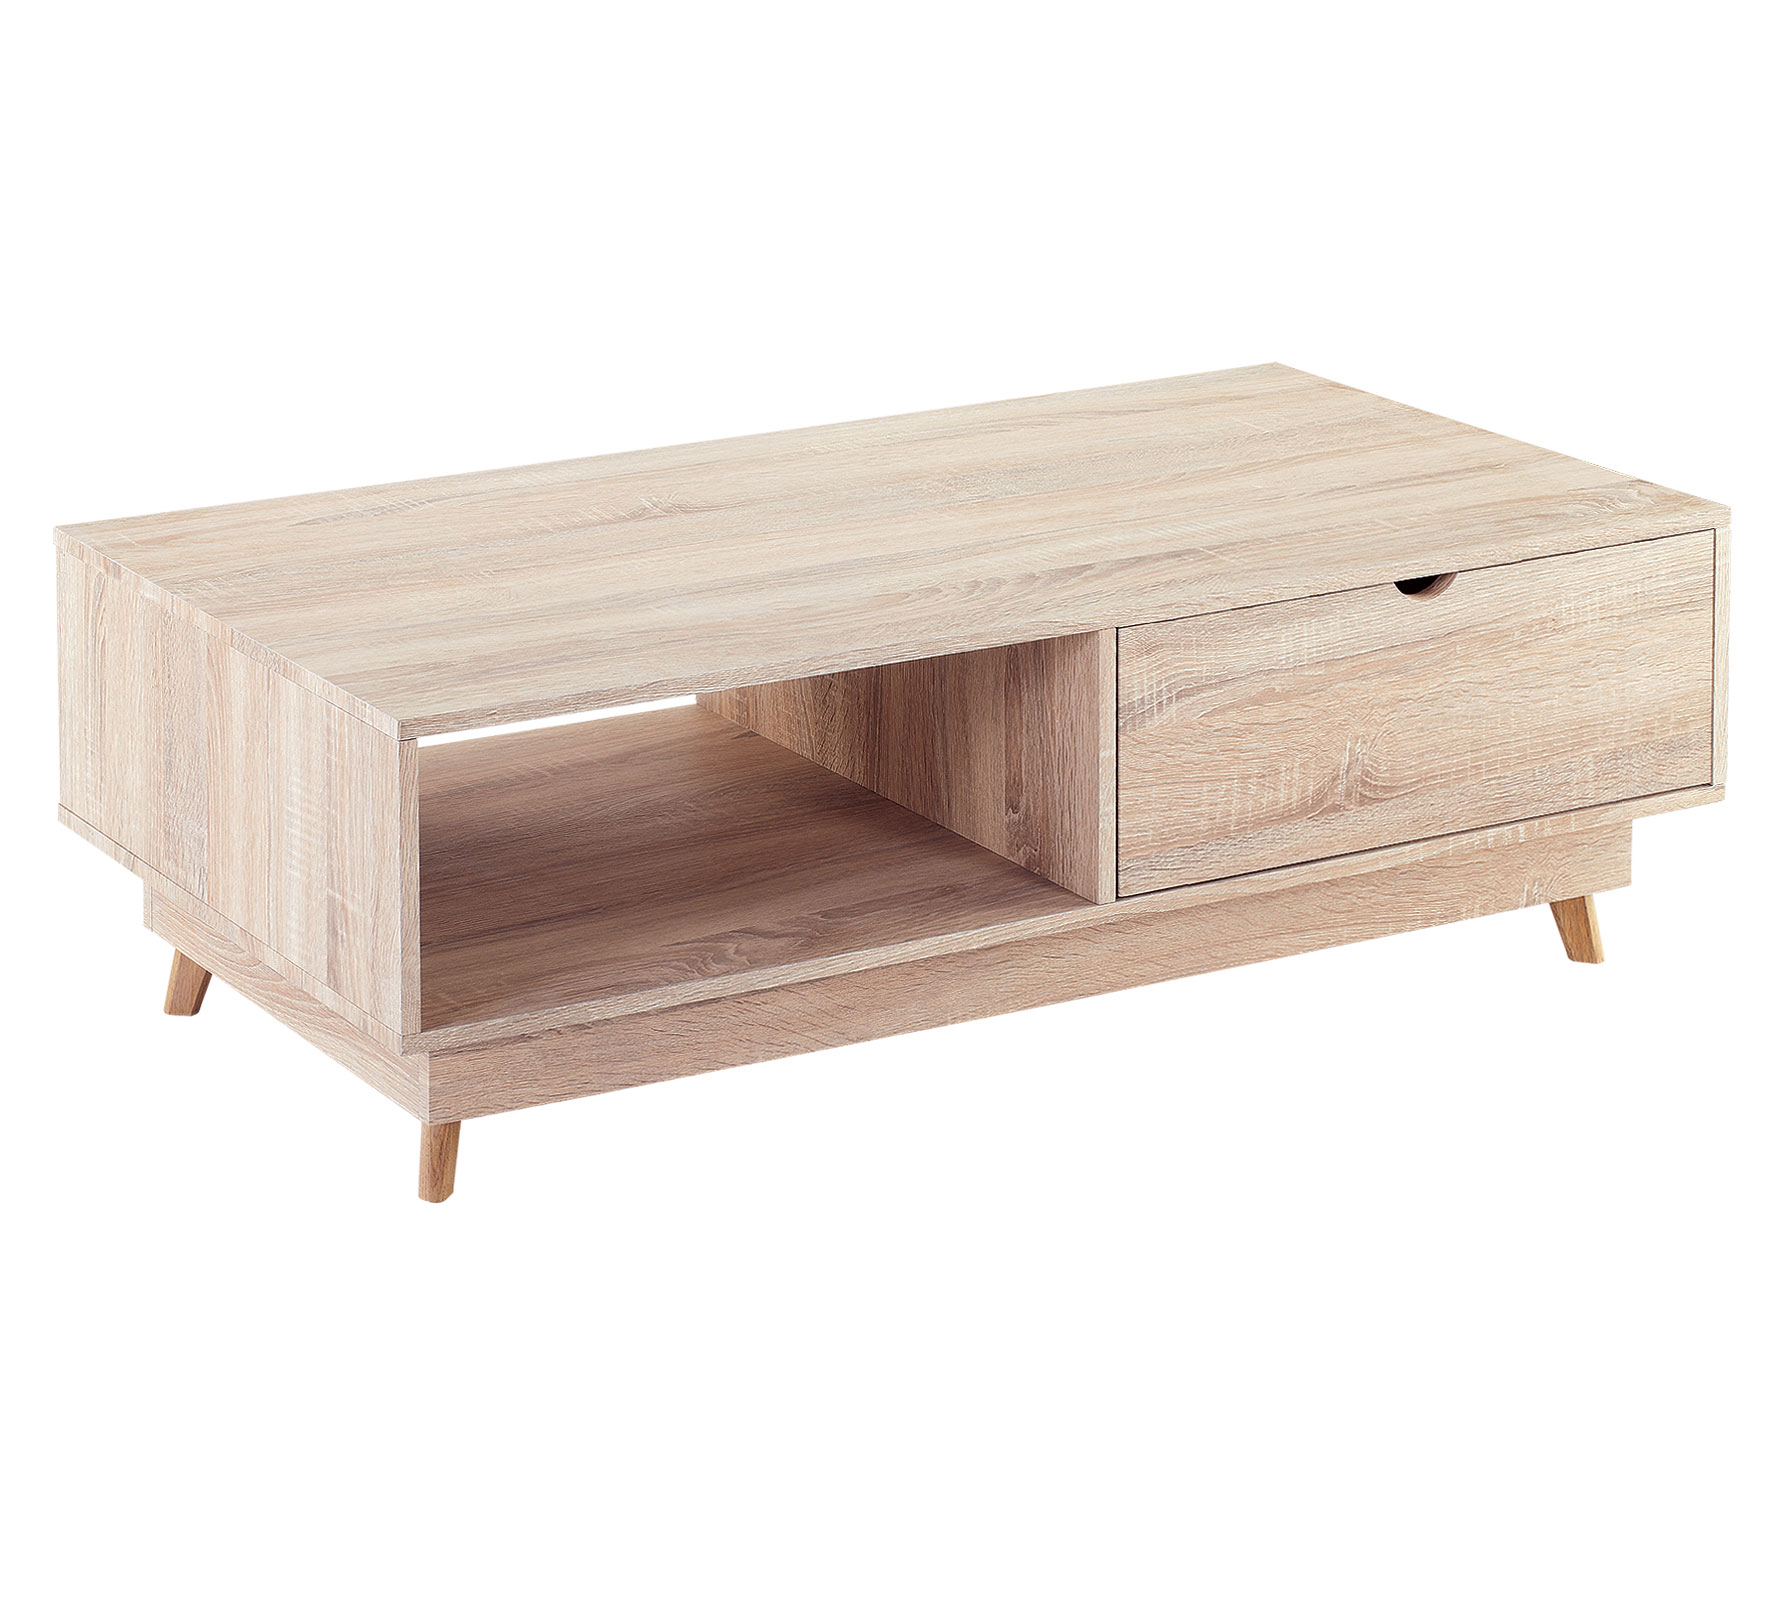 Cheap Coffee Tables Melbourne Coffee Tables Melbourne Cheap Coffee Tables Coffee Tables